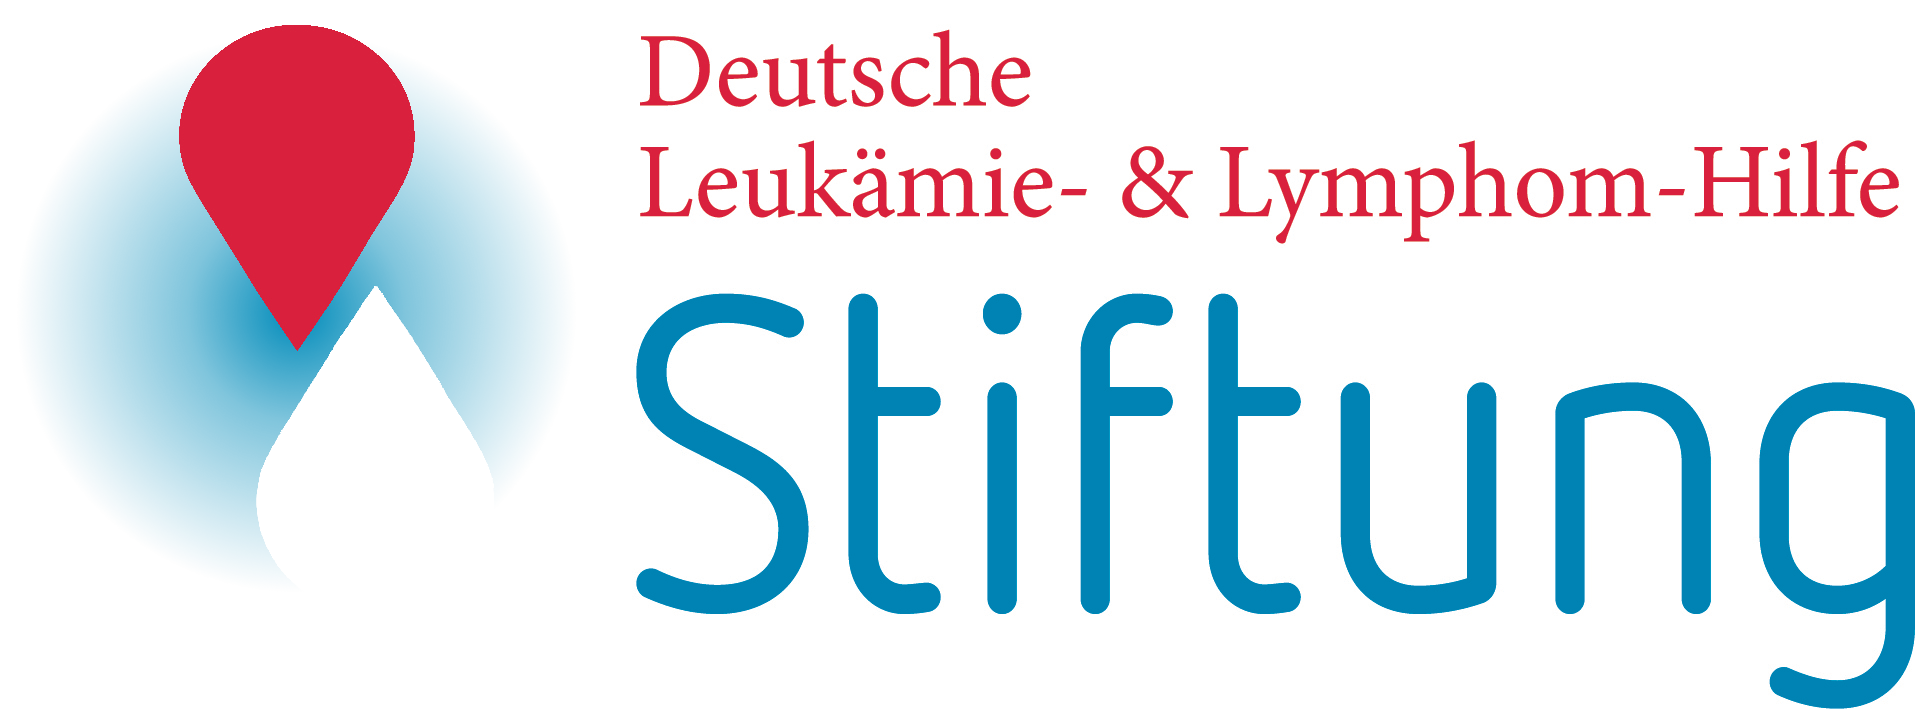 dlh_stiftung.png